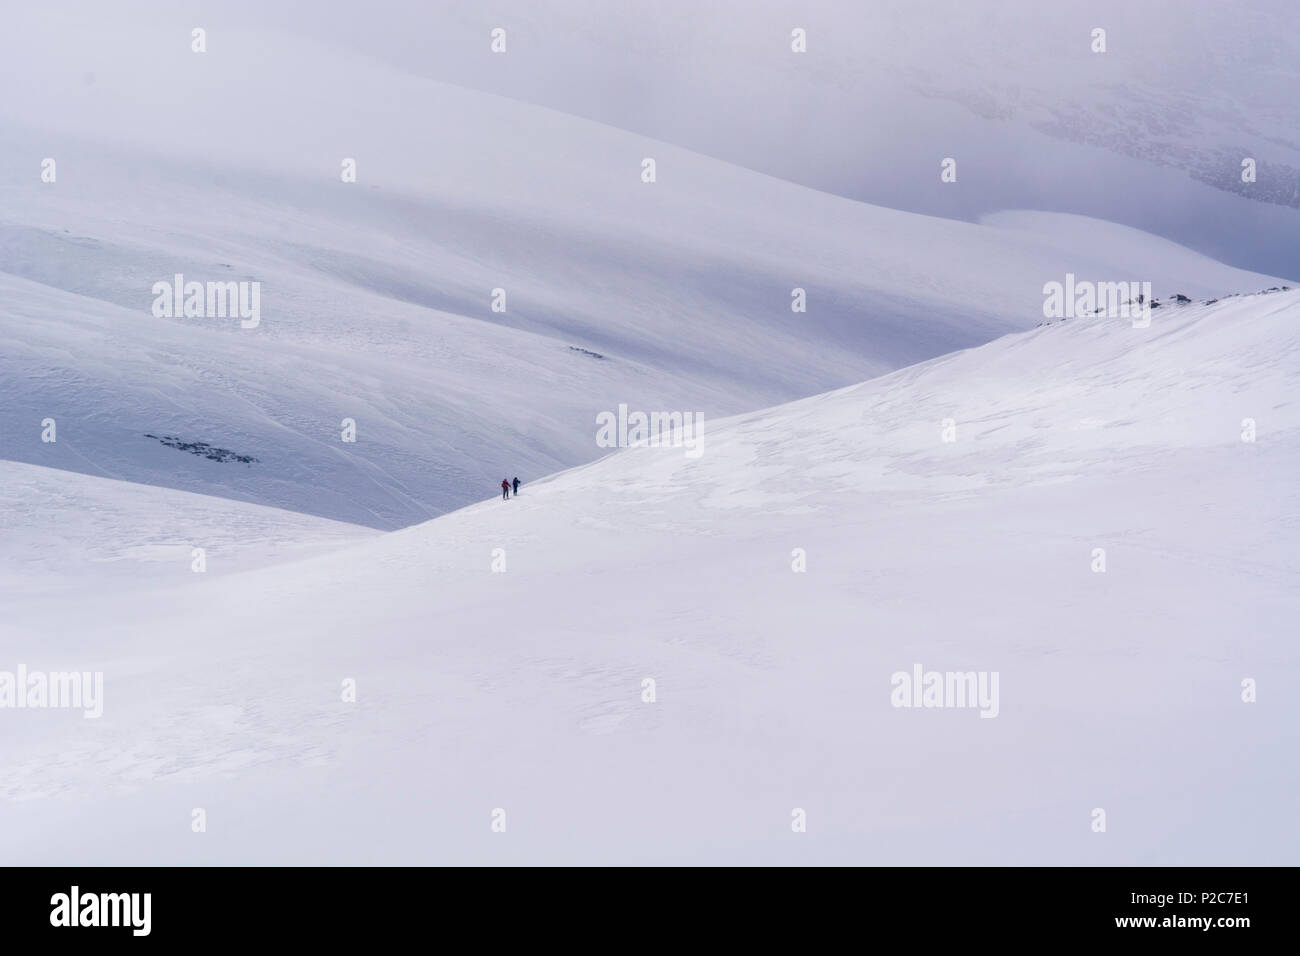 Two backcountry skiers ascending in the midst of large snow slopes, Simplon Region, Lepontine Alps, canton of Valais, Switzerlan Stock Photo